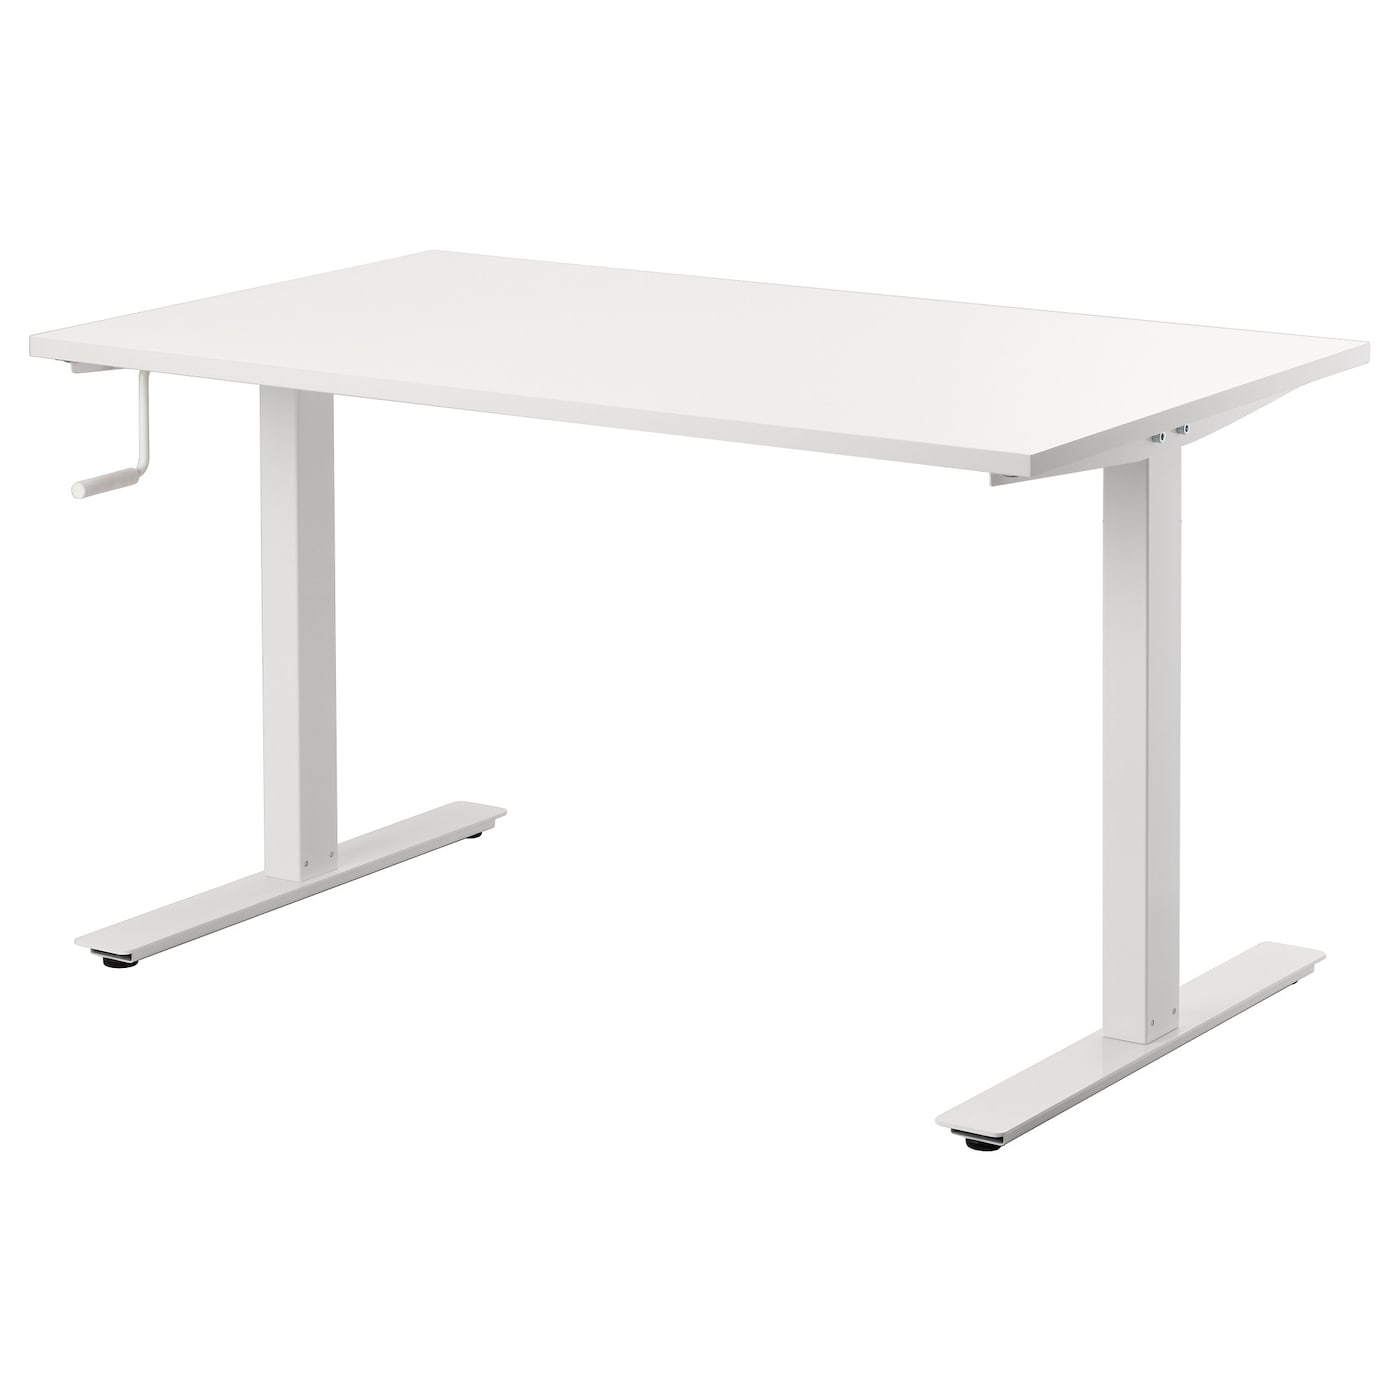 SKARSTA Desk Sit/stand White 120 X 70 Cm